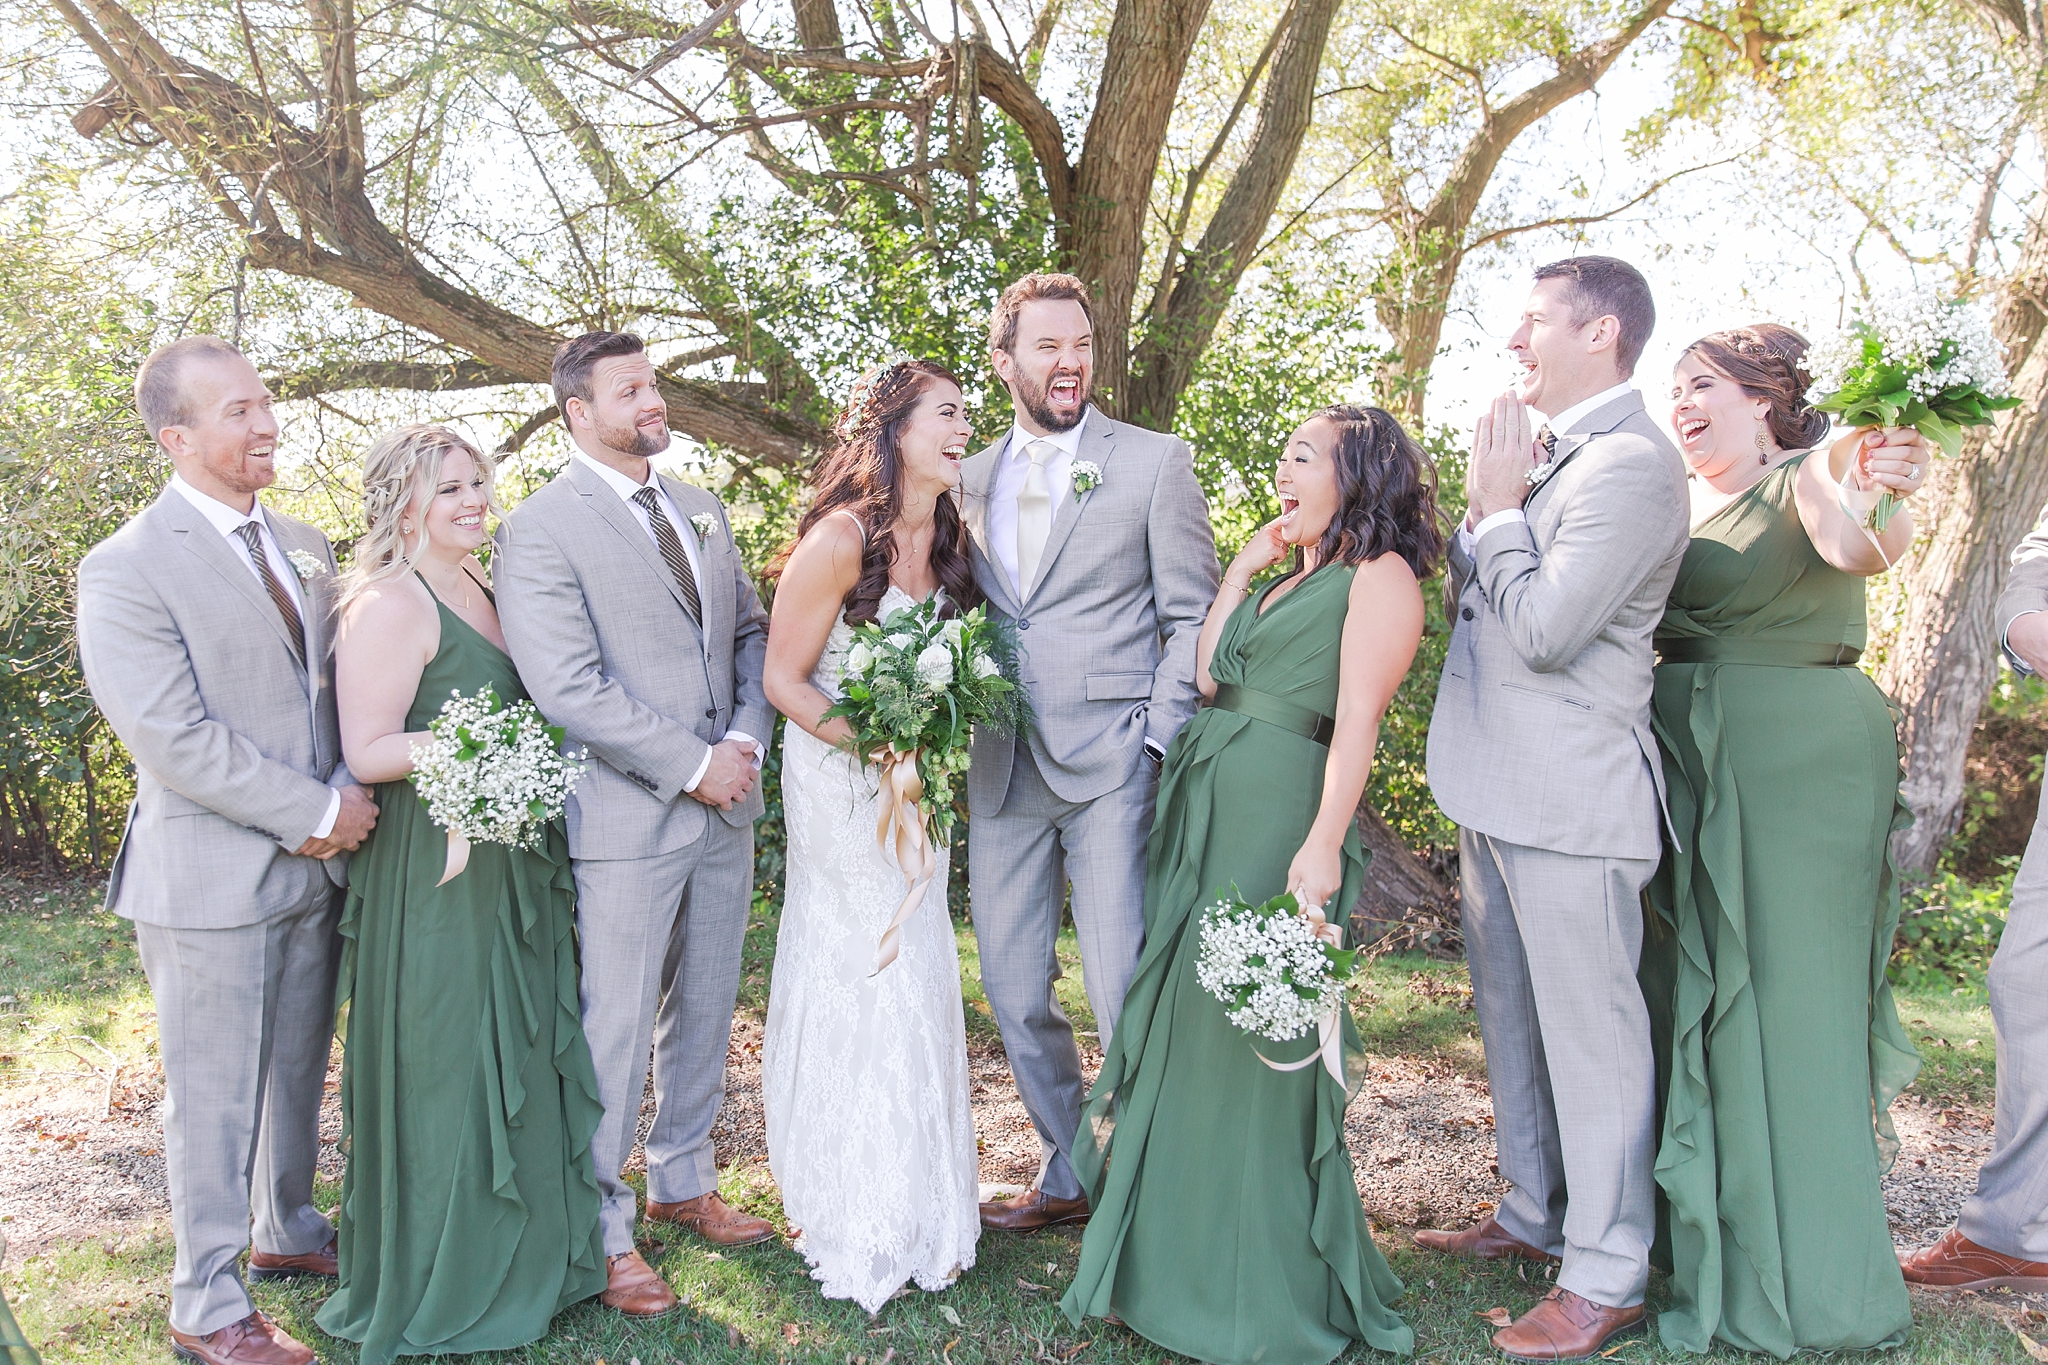 natural-rustic-wedding-photos-at-frutig-farms-the-valley-in-ann-arbor-michigan-by-courtney-carolyn-photography_0045.jpg